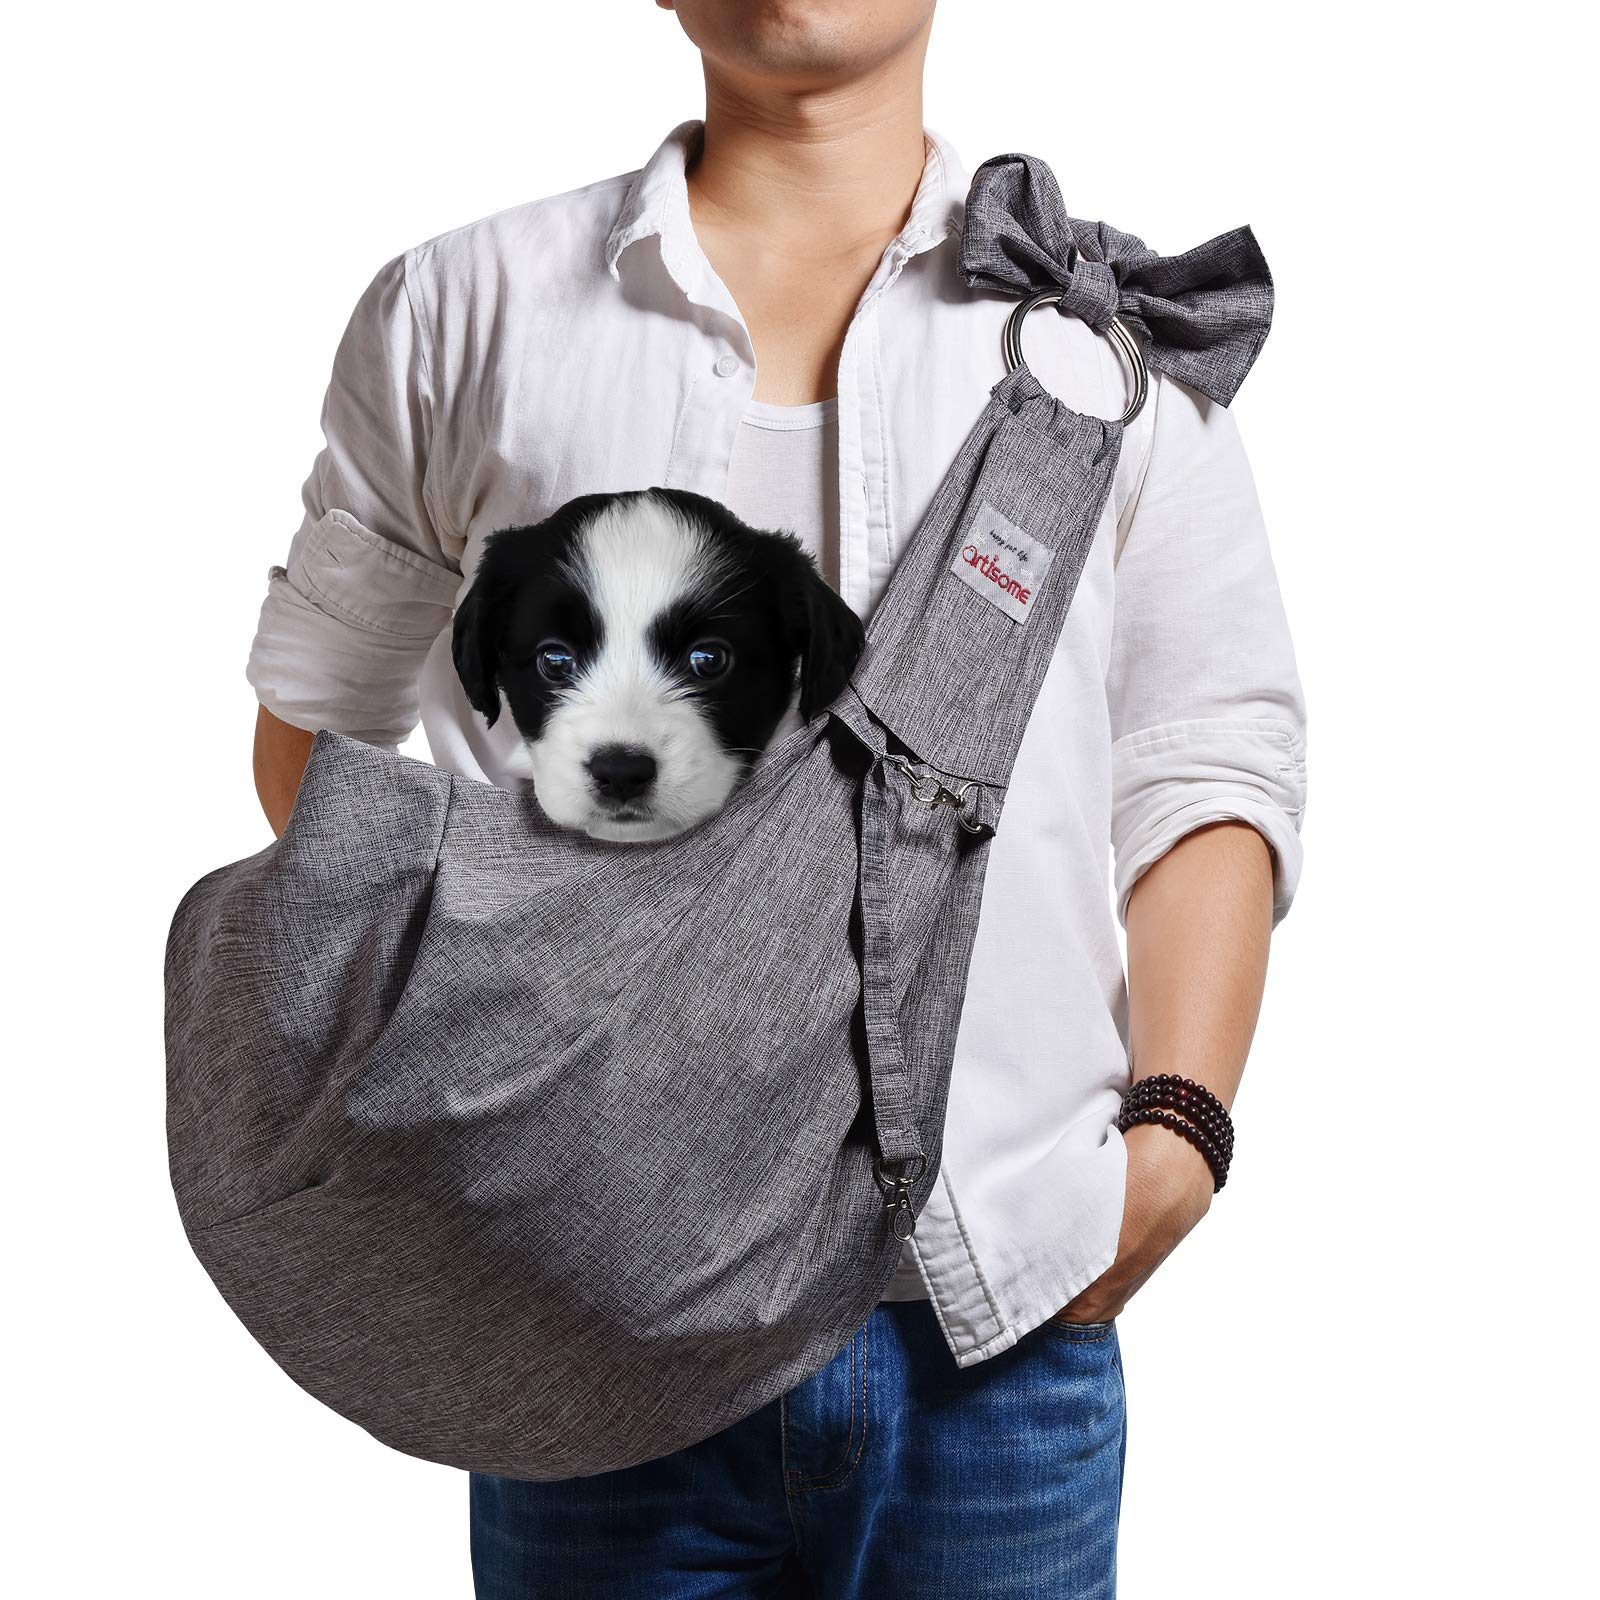 artisome Reversible Medium Dogs & Cats Sling Carrier Bag Suitable for 8-15 lbs Purse Waterproof Travel Hand-Free Pet Backpack (Grey, Adjustable)